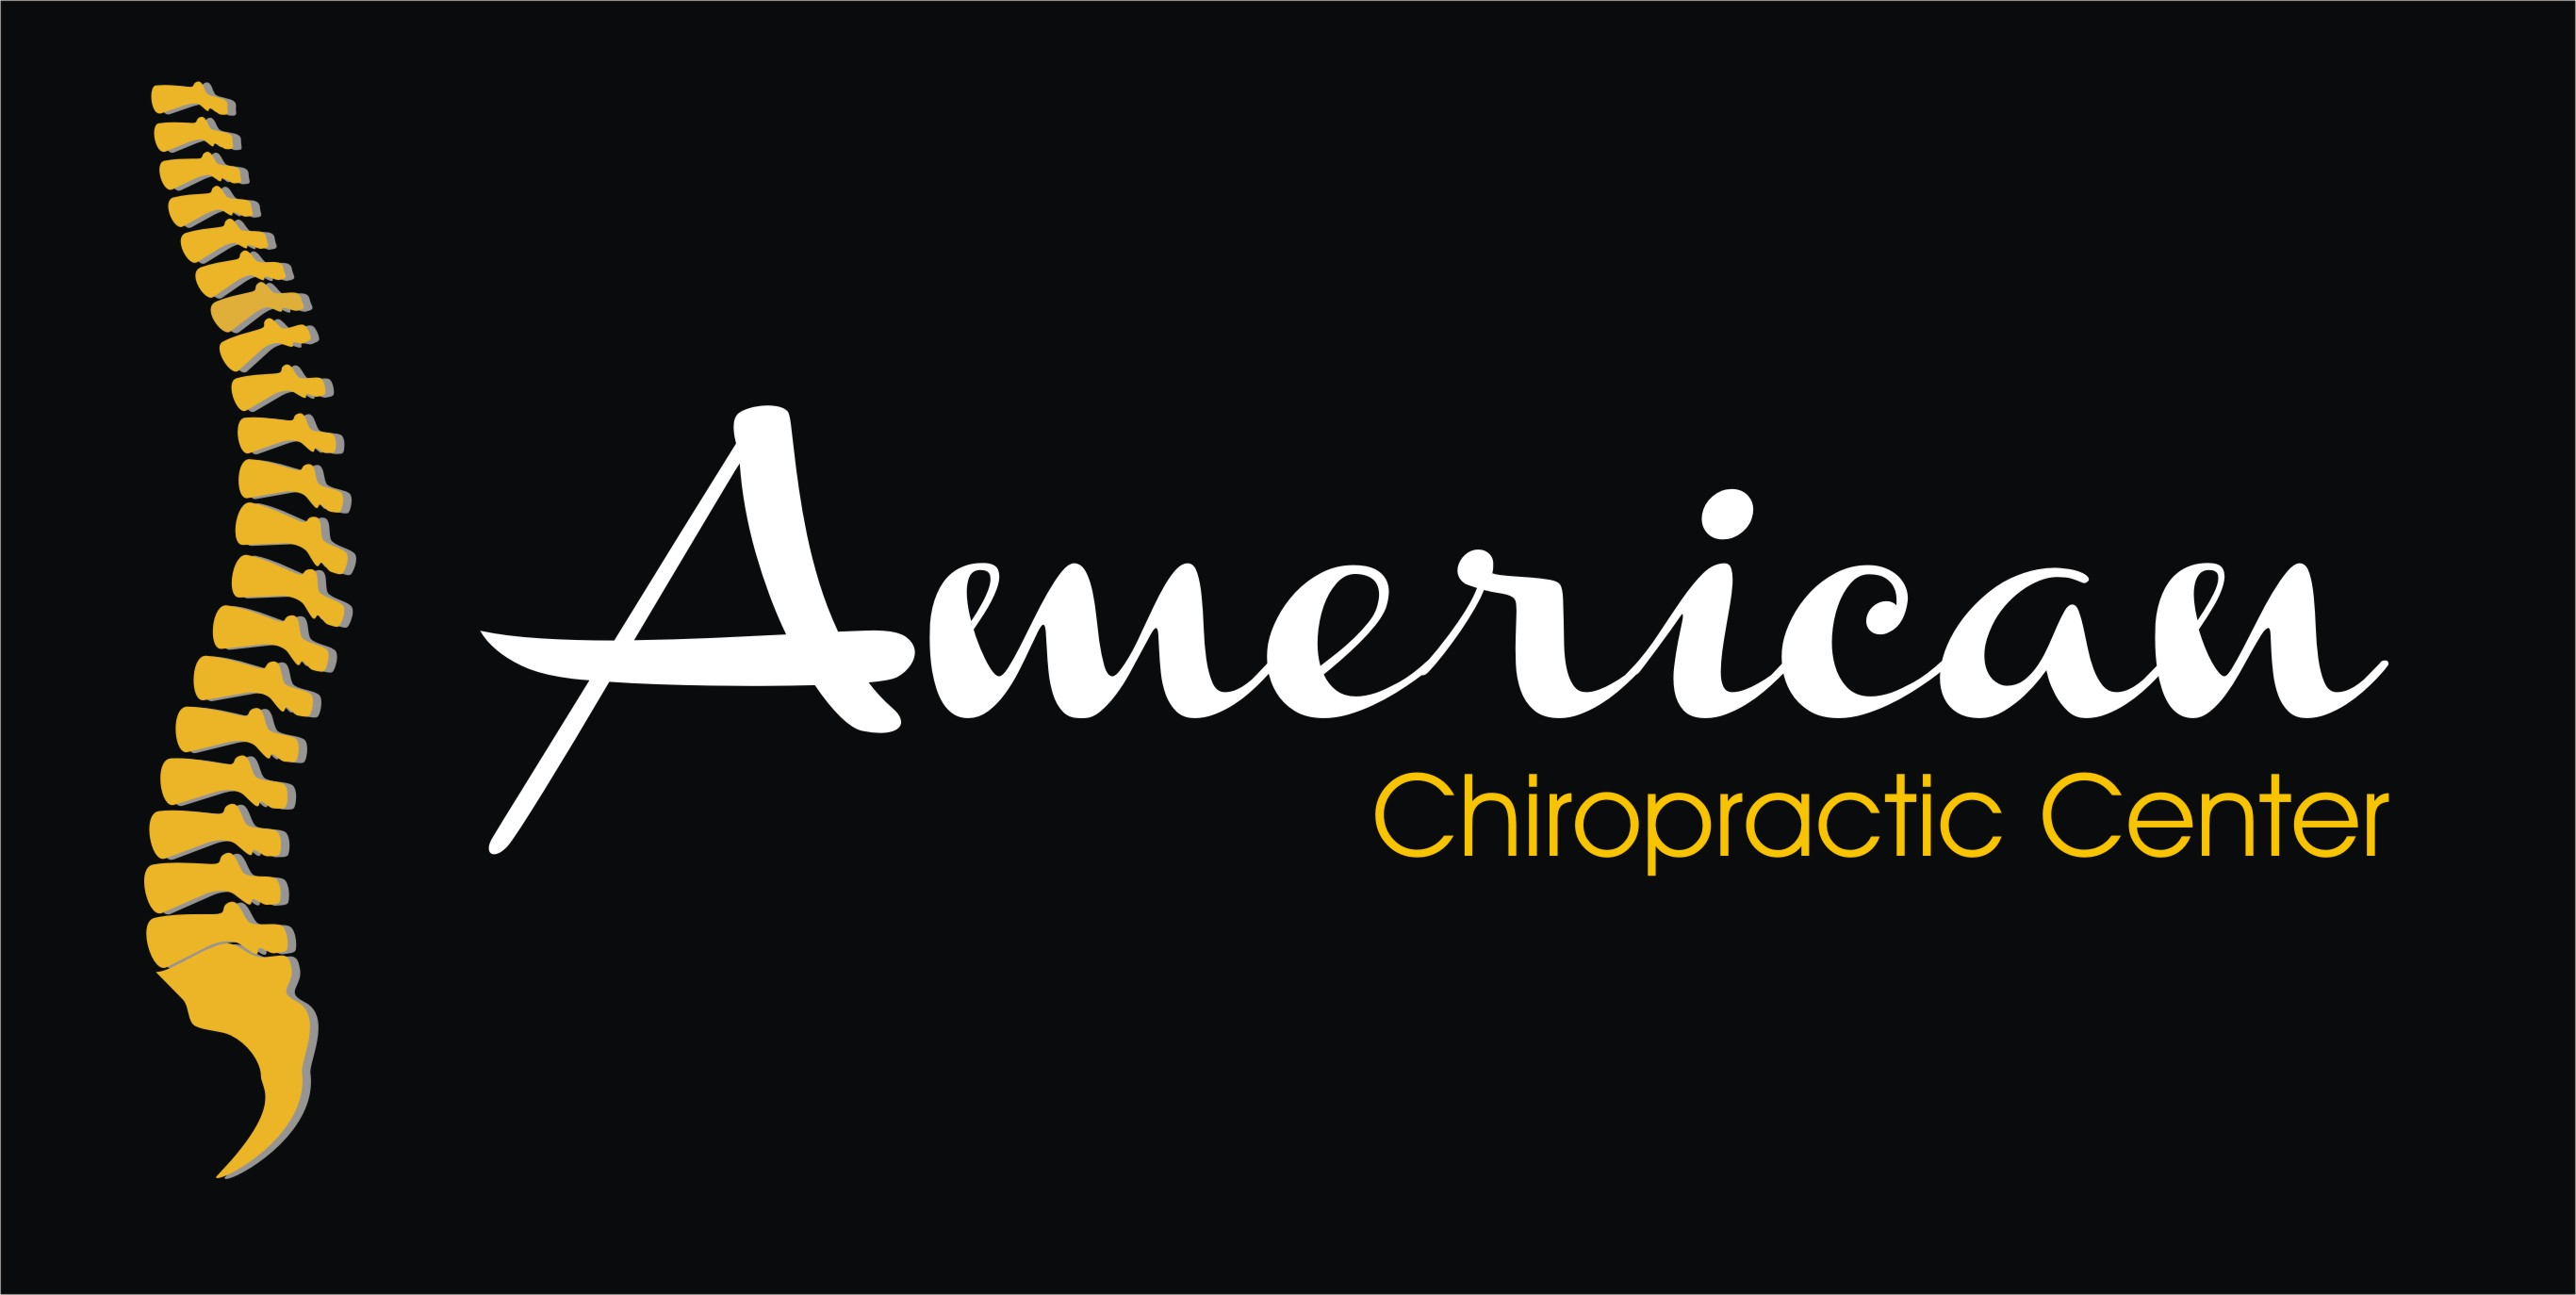 Logo Design by Crystal Desizns - Entry No. 238 in the Logo Design Contest Logo Design for American Chiropractic Center.